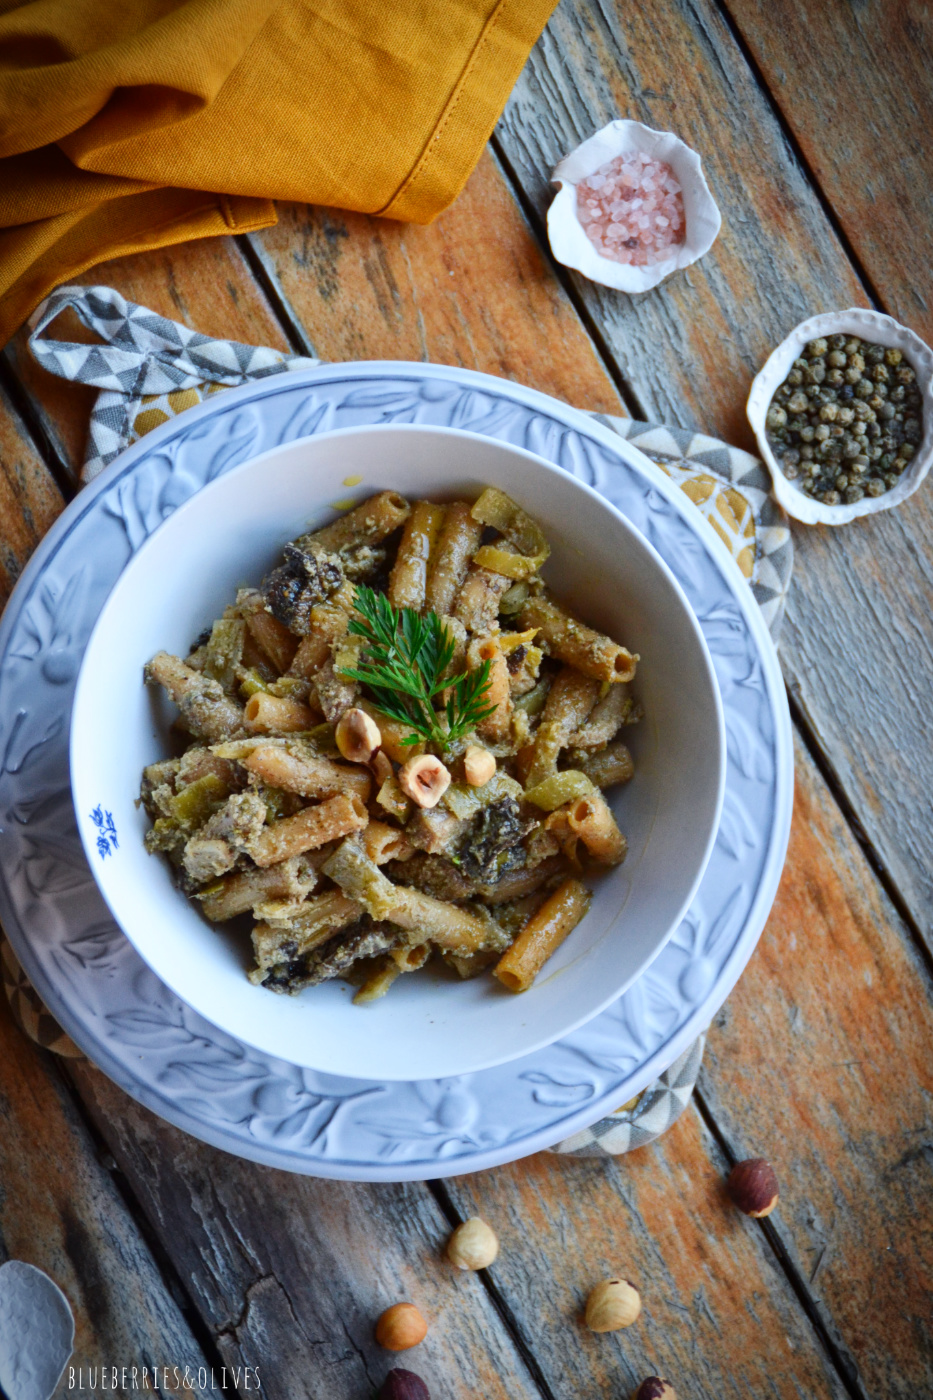 WHITE AND BLUE BOWL OF PASTA WITH FENNEL PESTO AND OLD WOODEN BACKGROUND, YELLOW TABLECLOTH